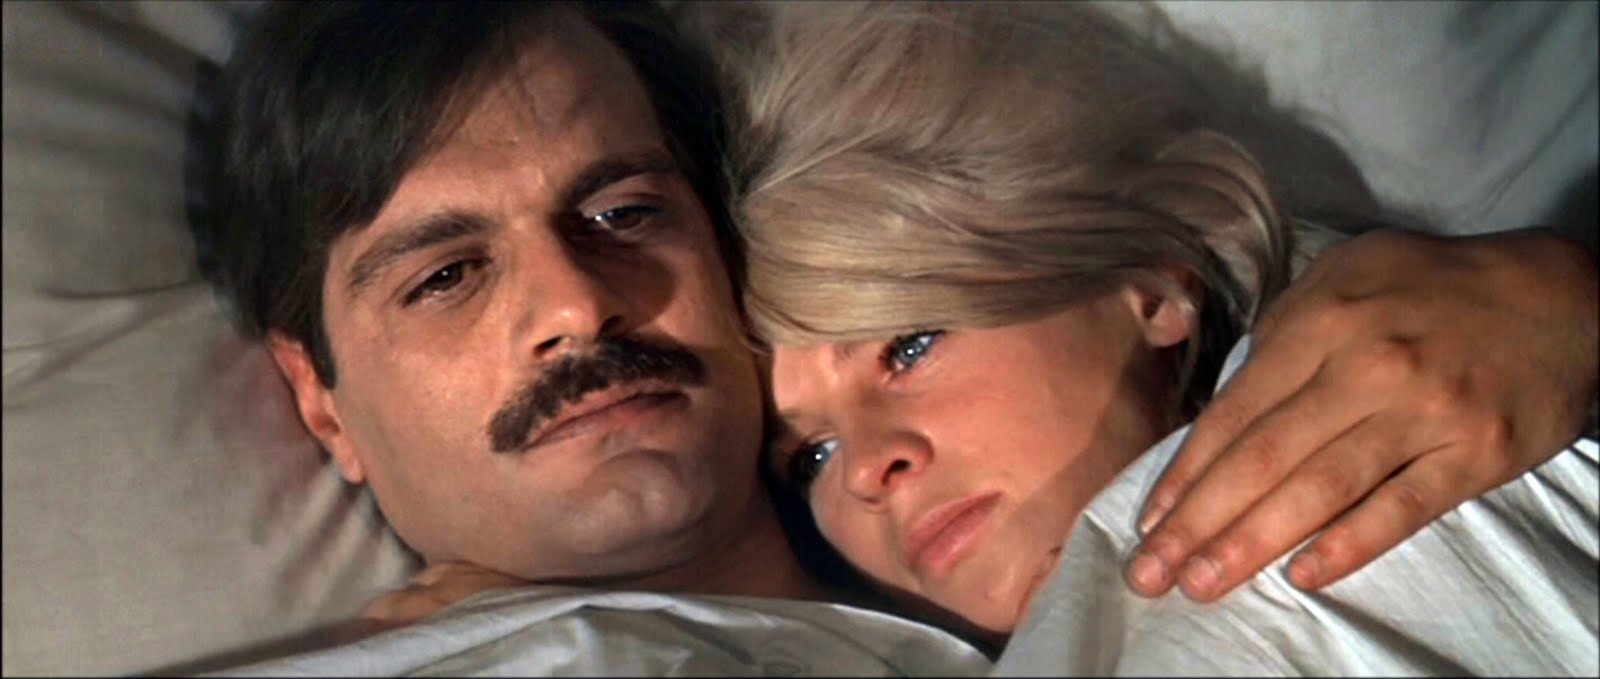 Trailer-Doctor_Zhivago-Yuri_Zhivago_and_Lara